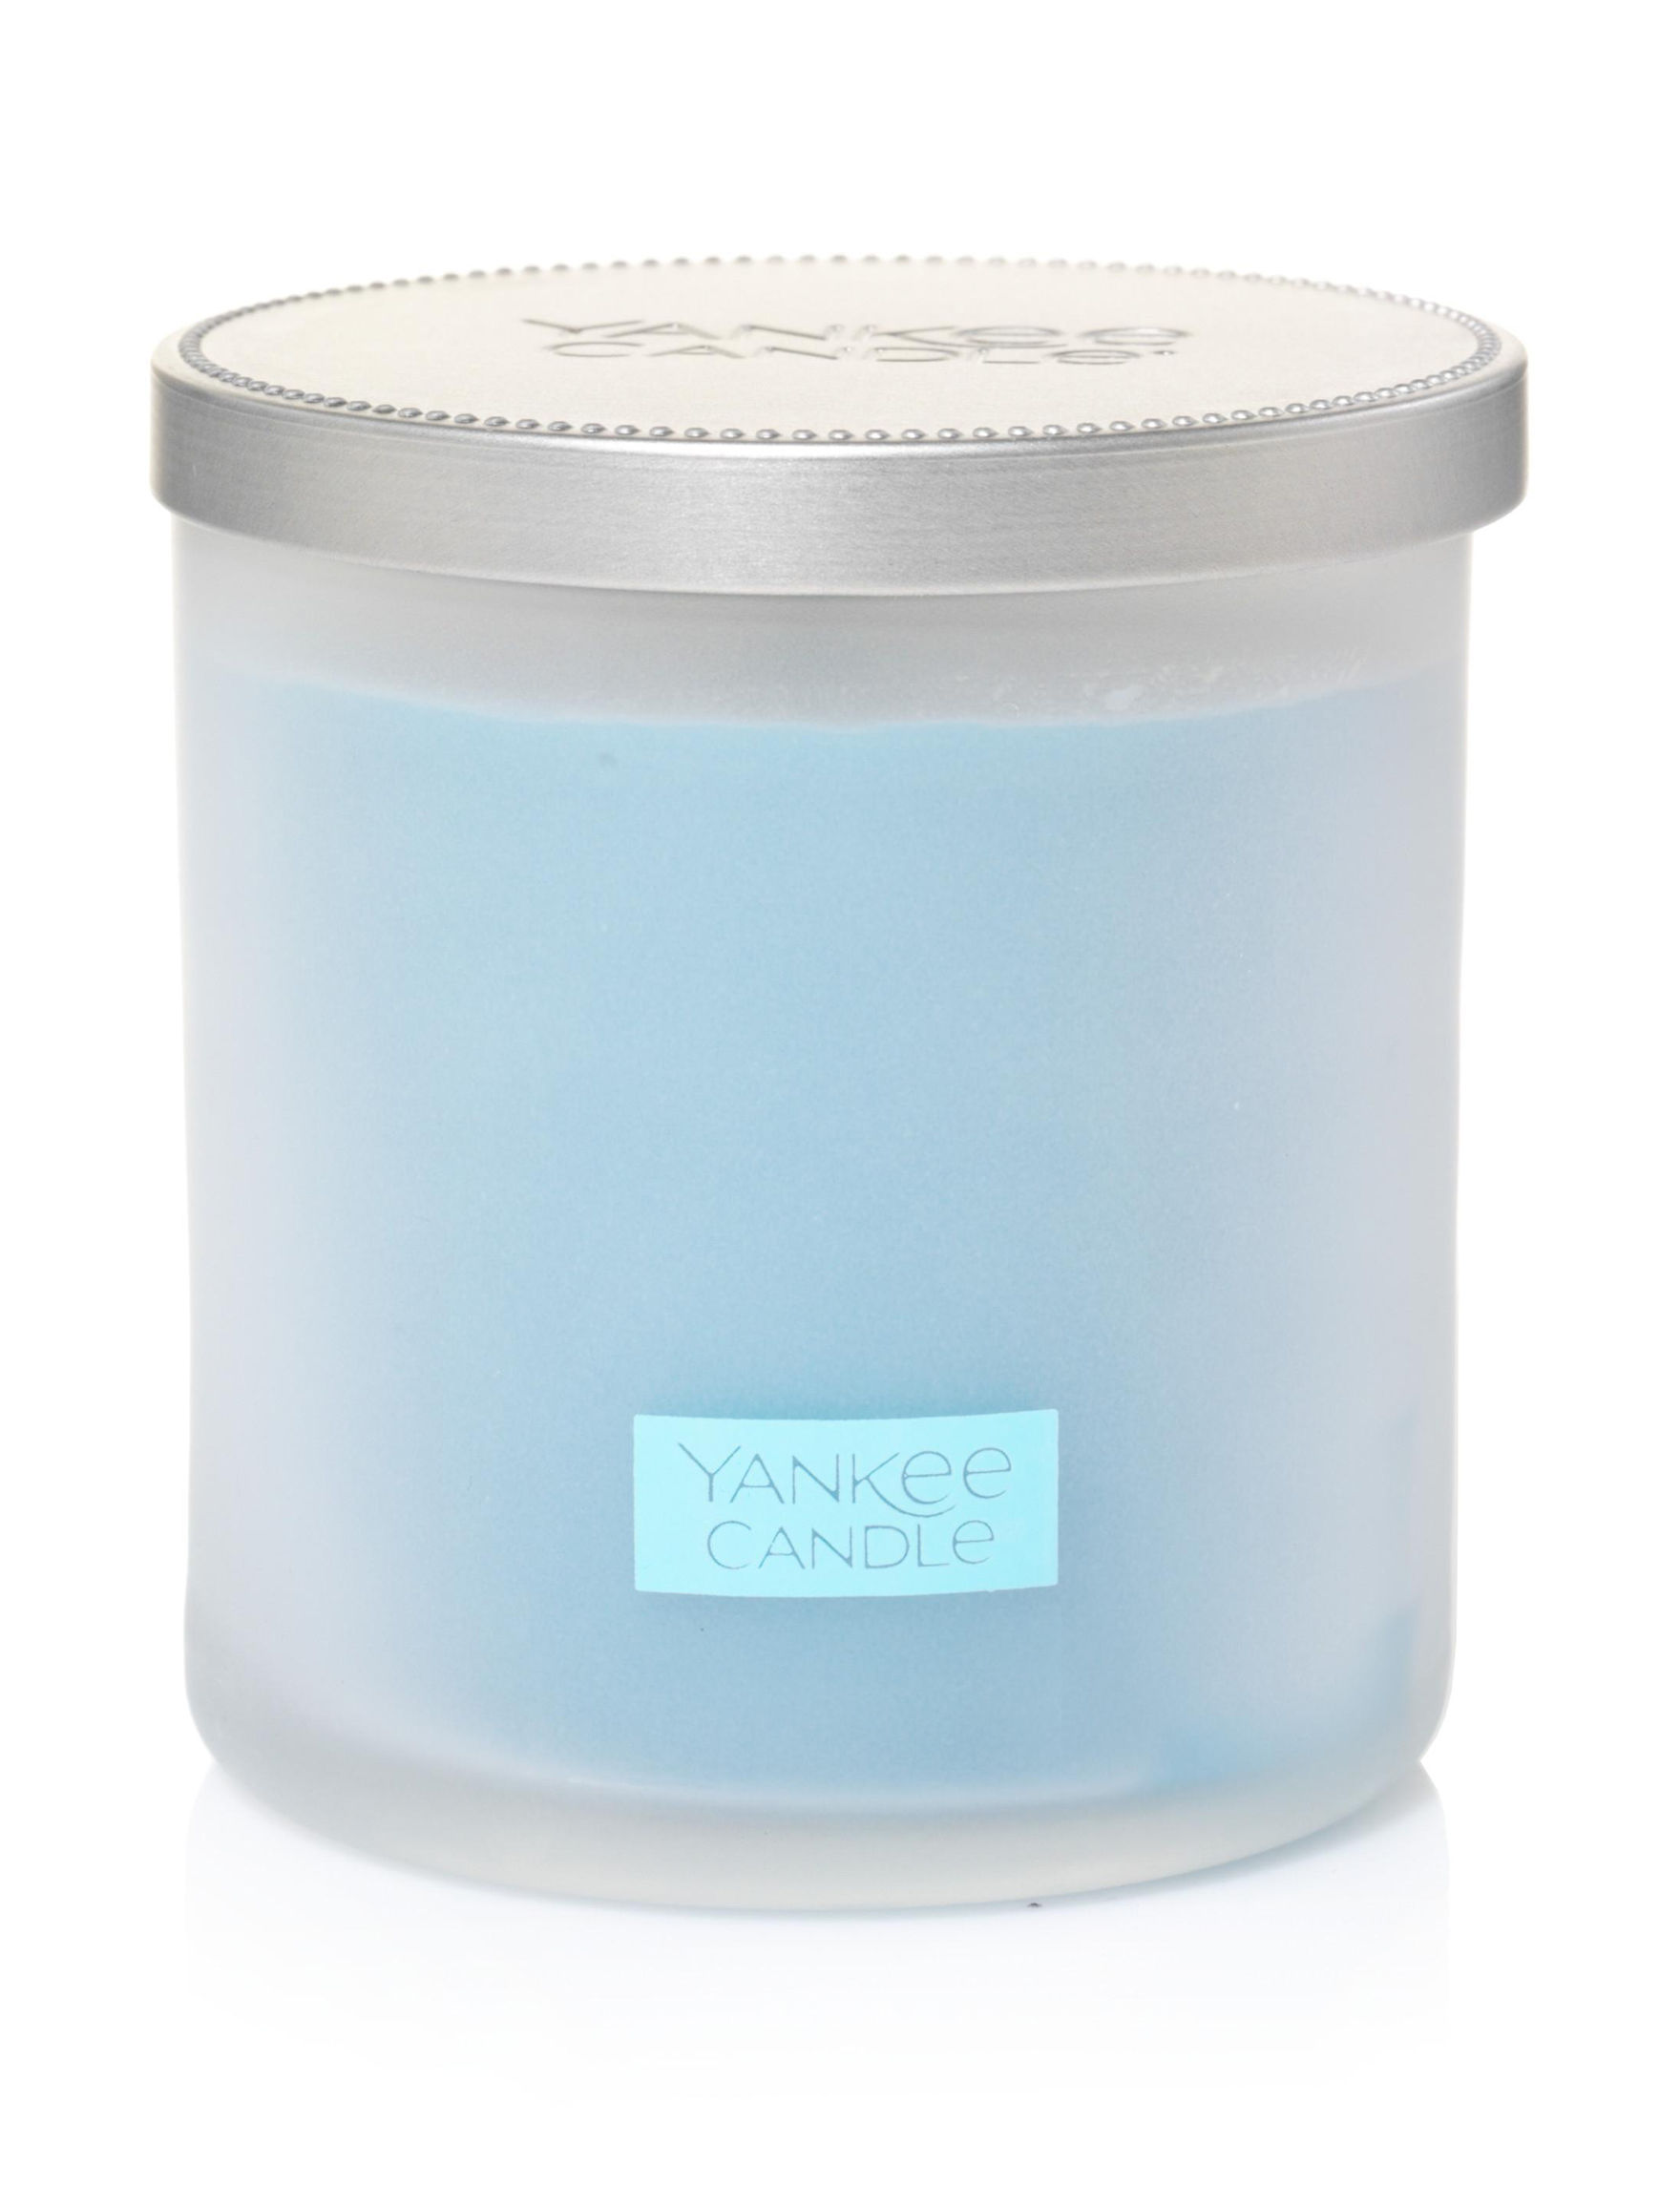 Yankee Candle  Candle Holders Candles Candles & Diffusers Home Accents